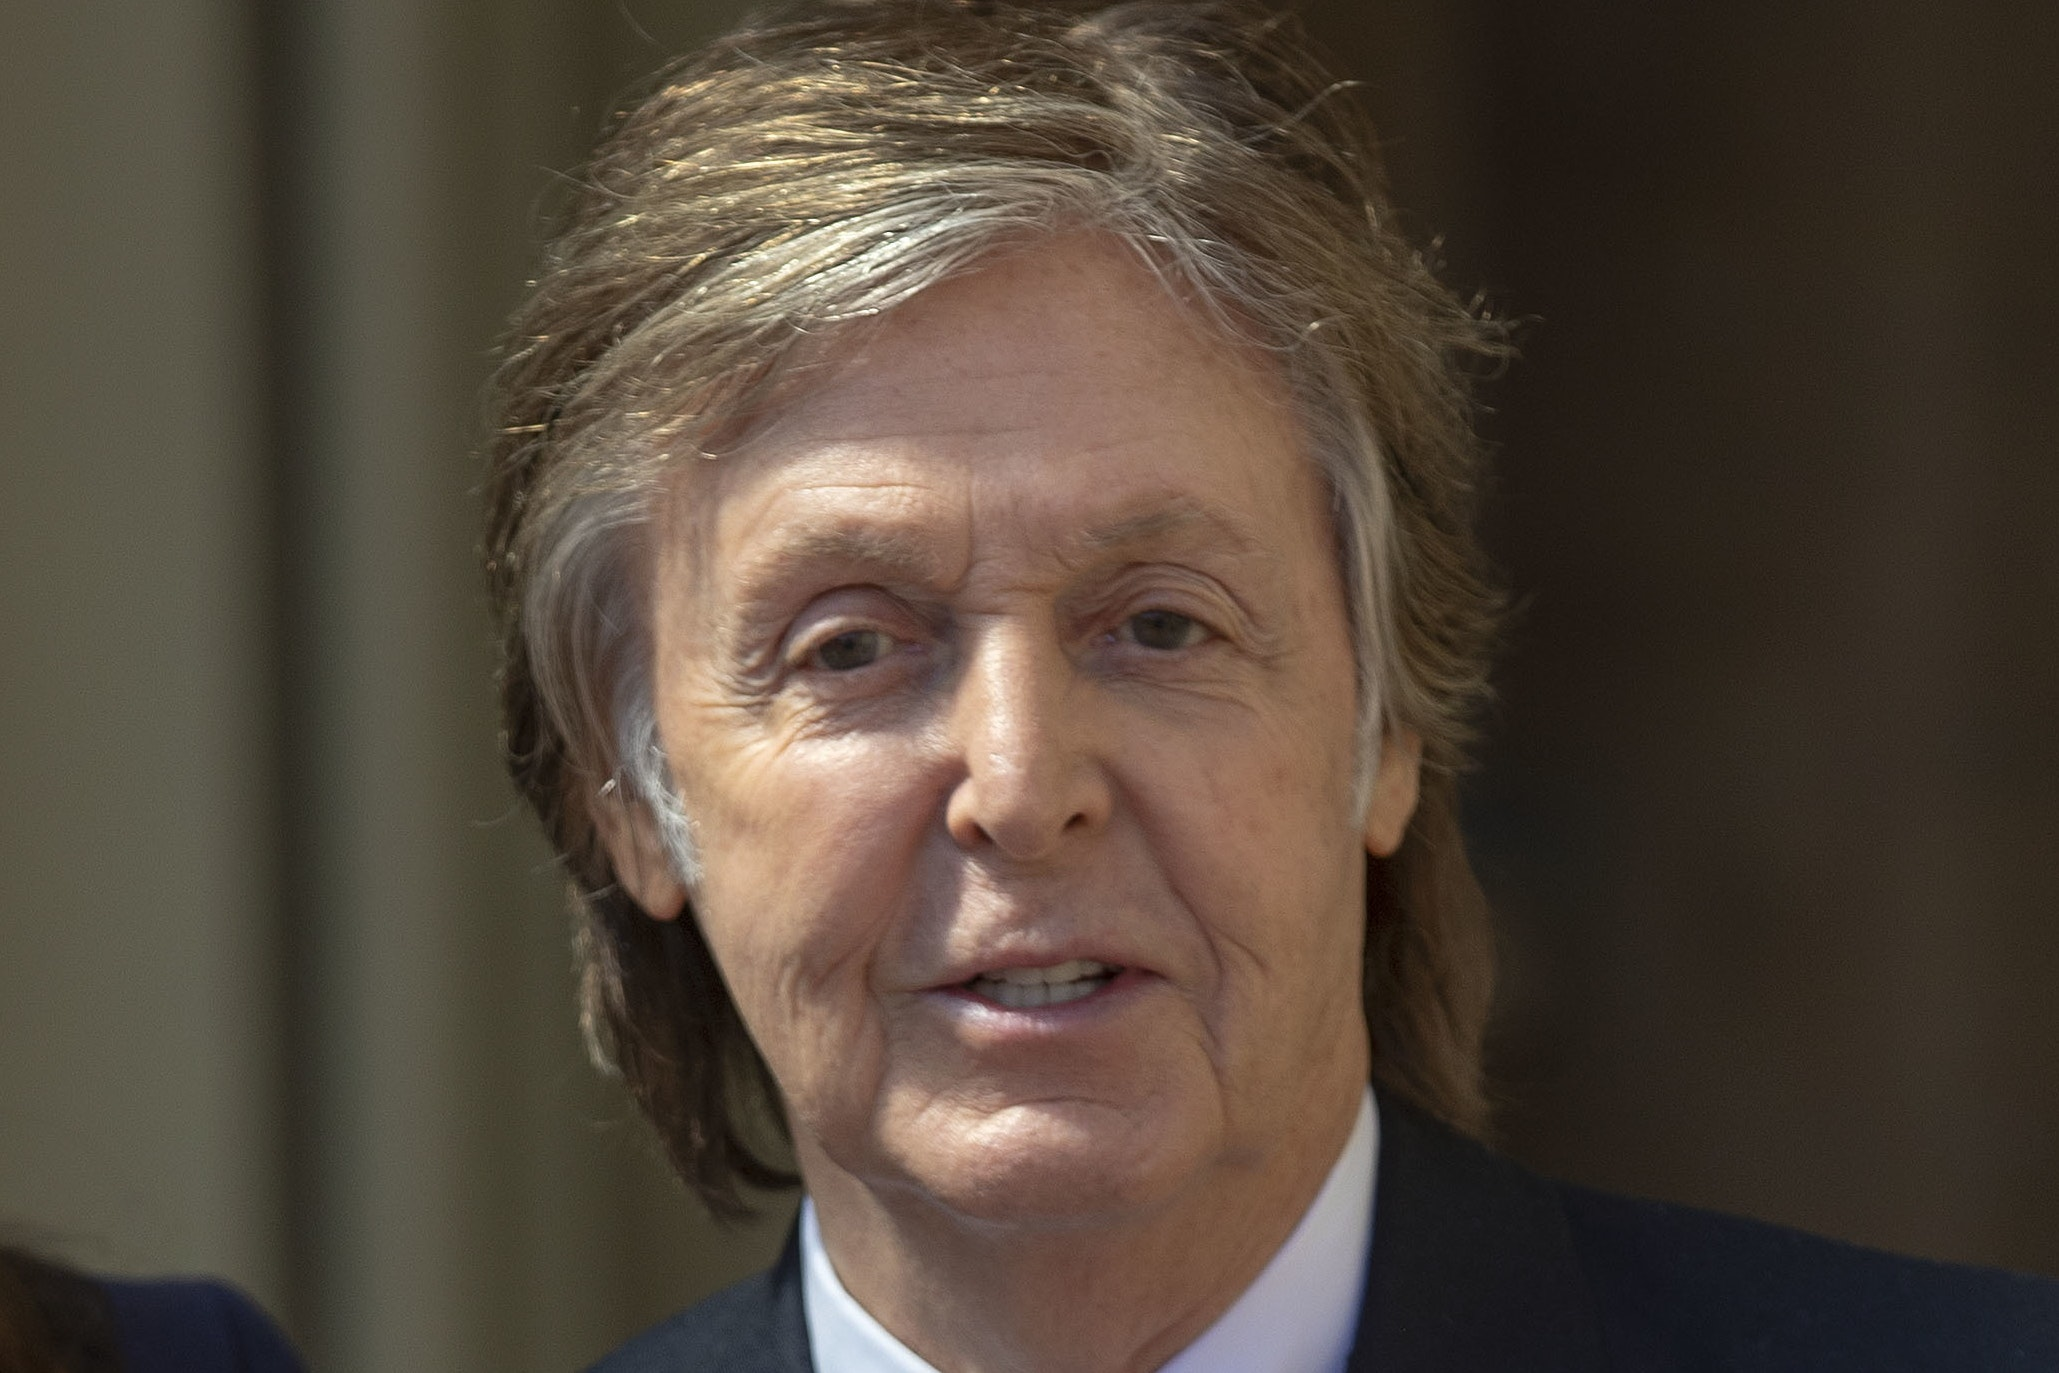 Sir Paul Mccartney Reveals His Grandson Was Mugged At Knifepoint Bournemouth Echo